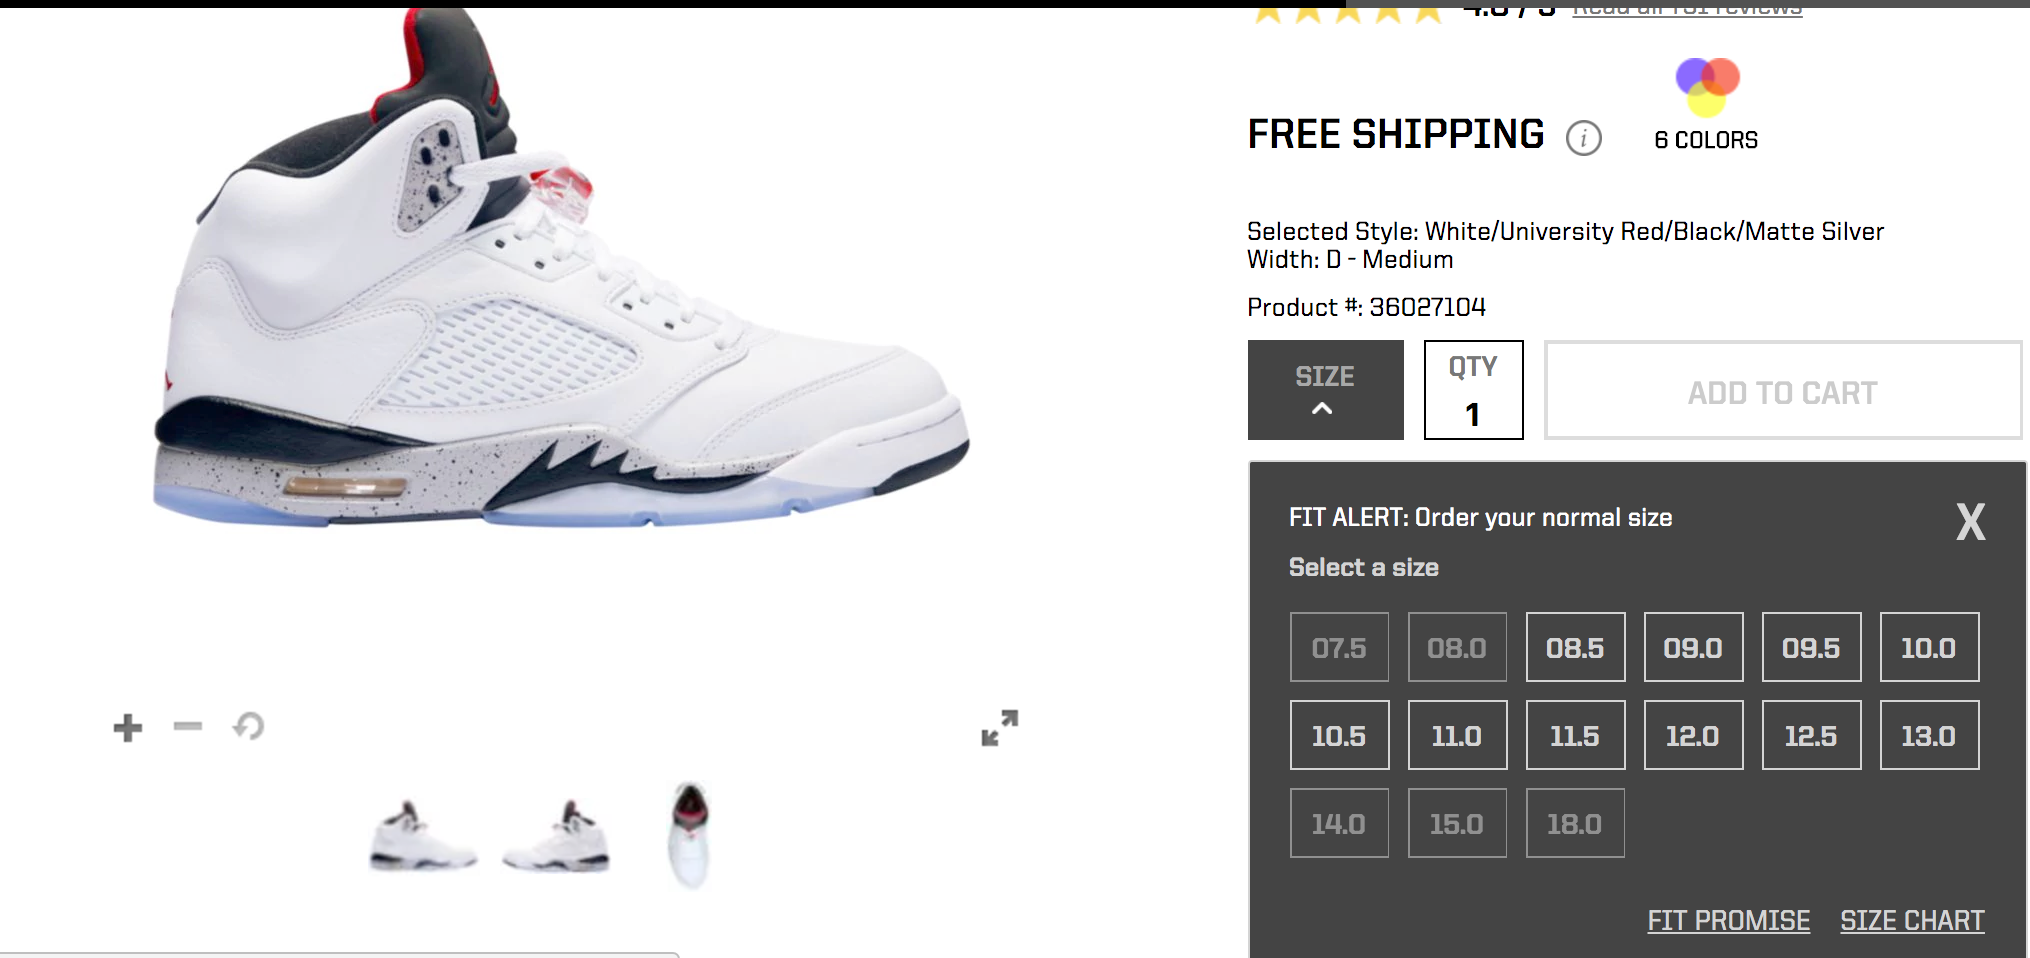 8f0b842735d Here are a just a few examples from Foot Locker's Eastbay (FL) website of  Jordan products that I'm confident were day one sell outs in 2015.